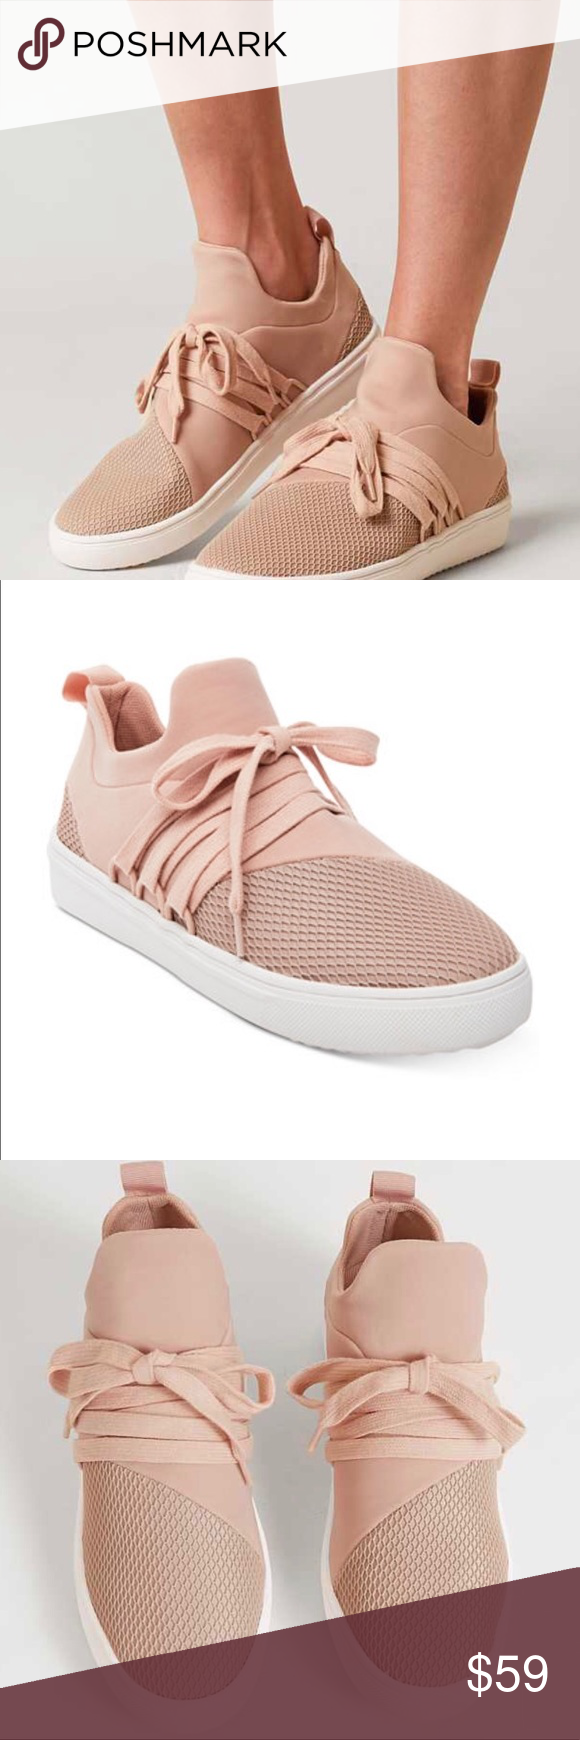 c57161aa9e7 Steve Madden Blush Lancer Athletic Shoes Women s Steve Madden Blush Lancer  Athletic Shoes. Only worn once outside. Size 5 Steve Madden Shoes Sneakers